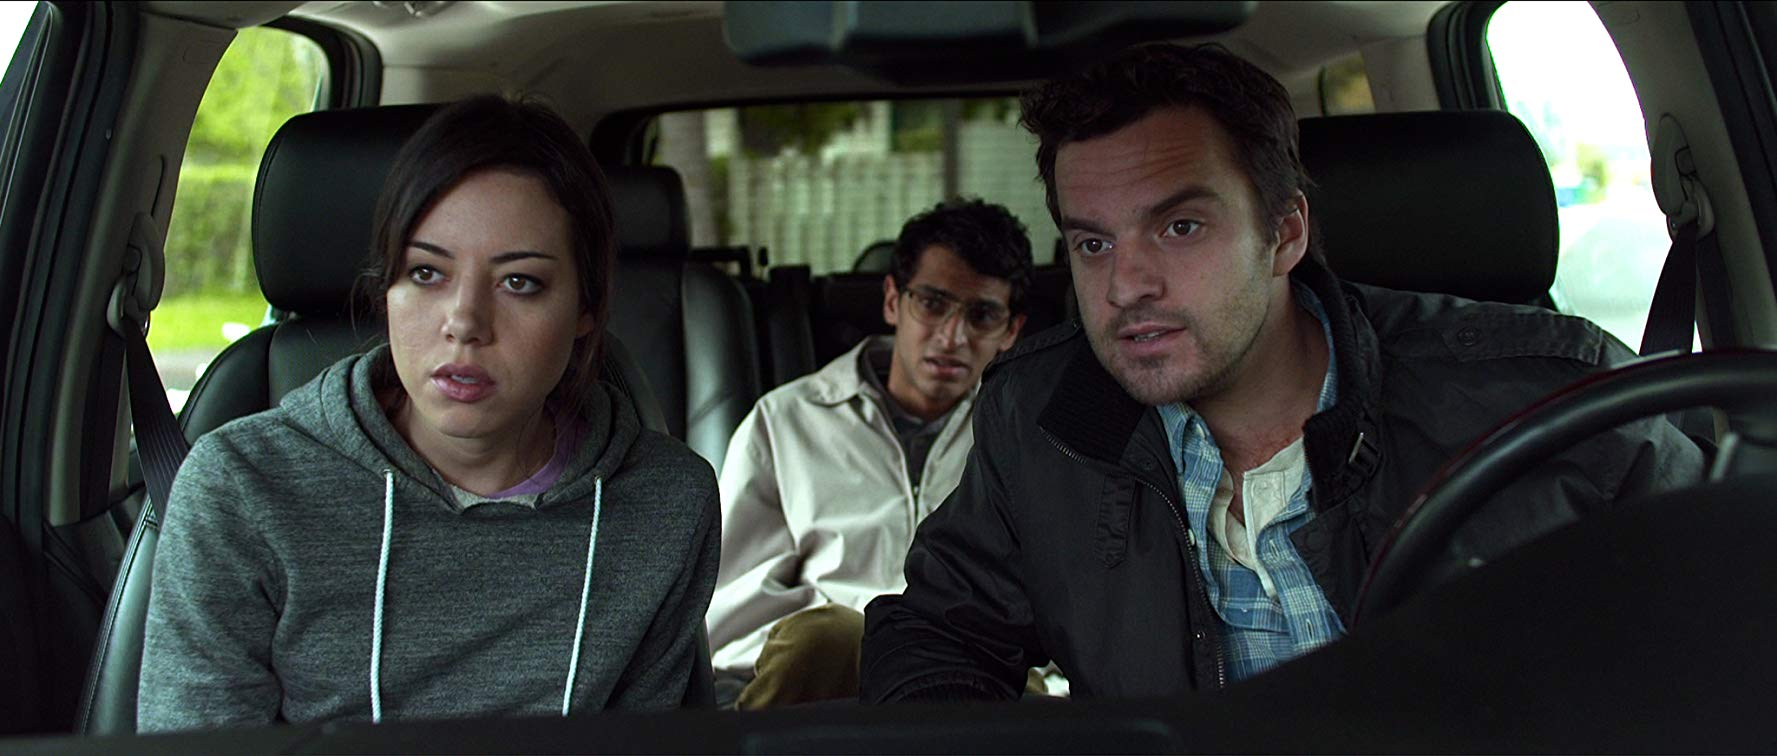 Aubrey Plaza, Karan Soni, Jake Johnson in Safety Not Guaranteed (2012)